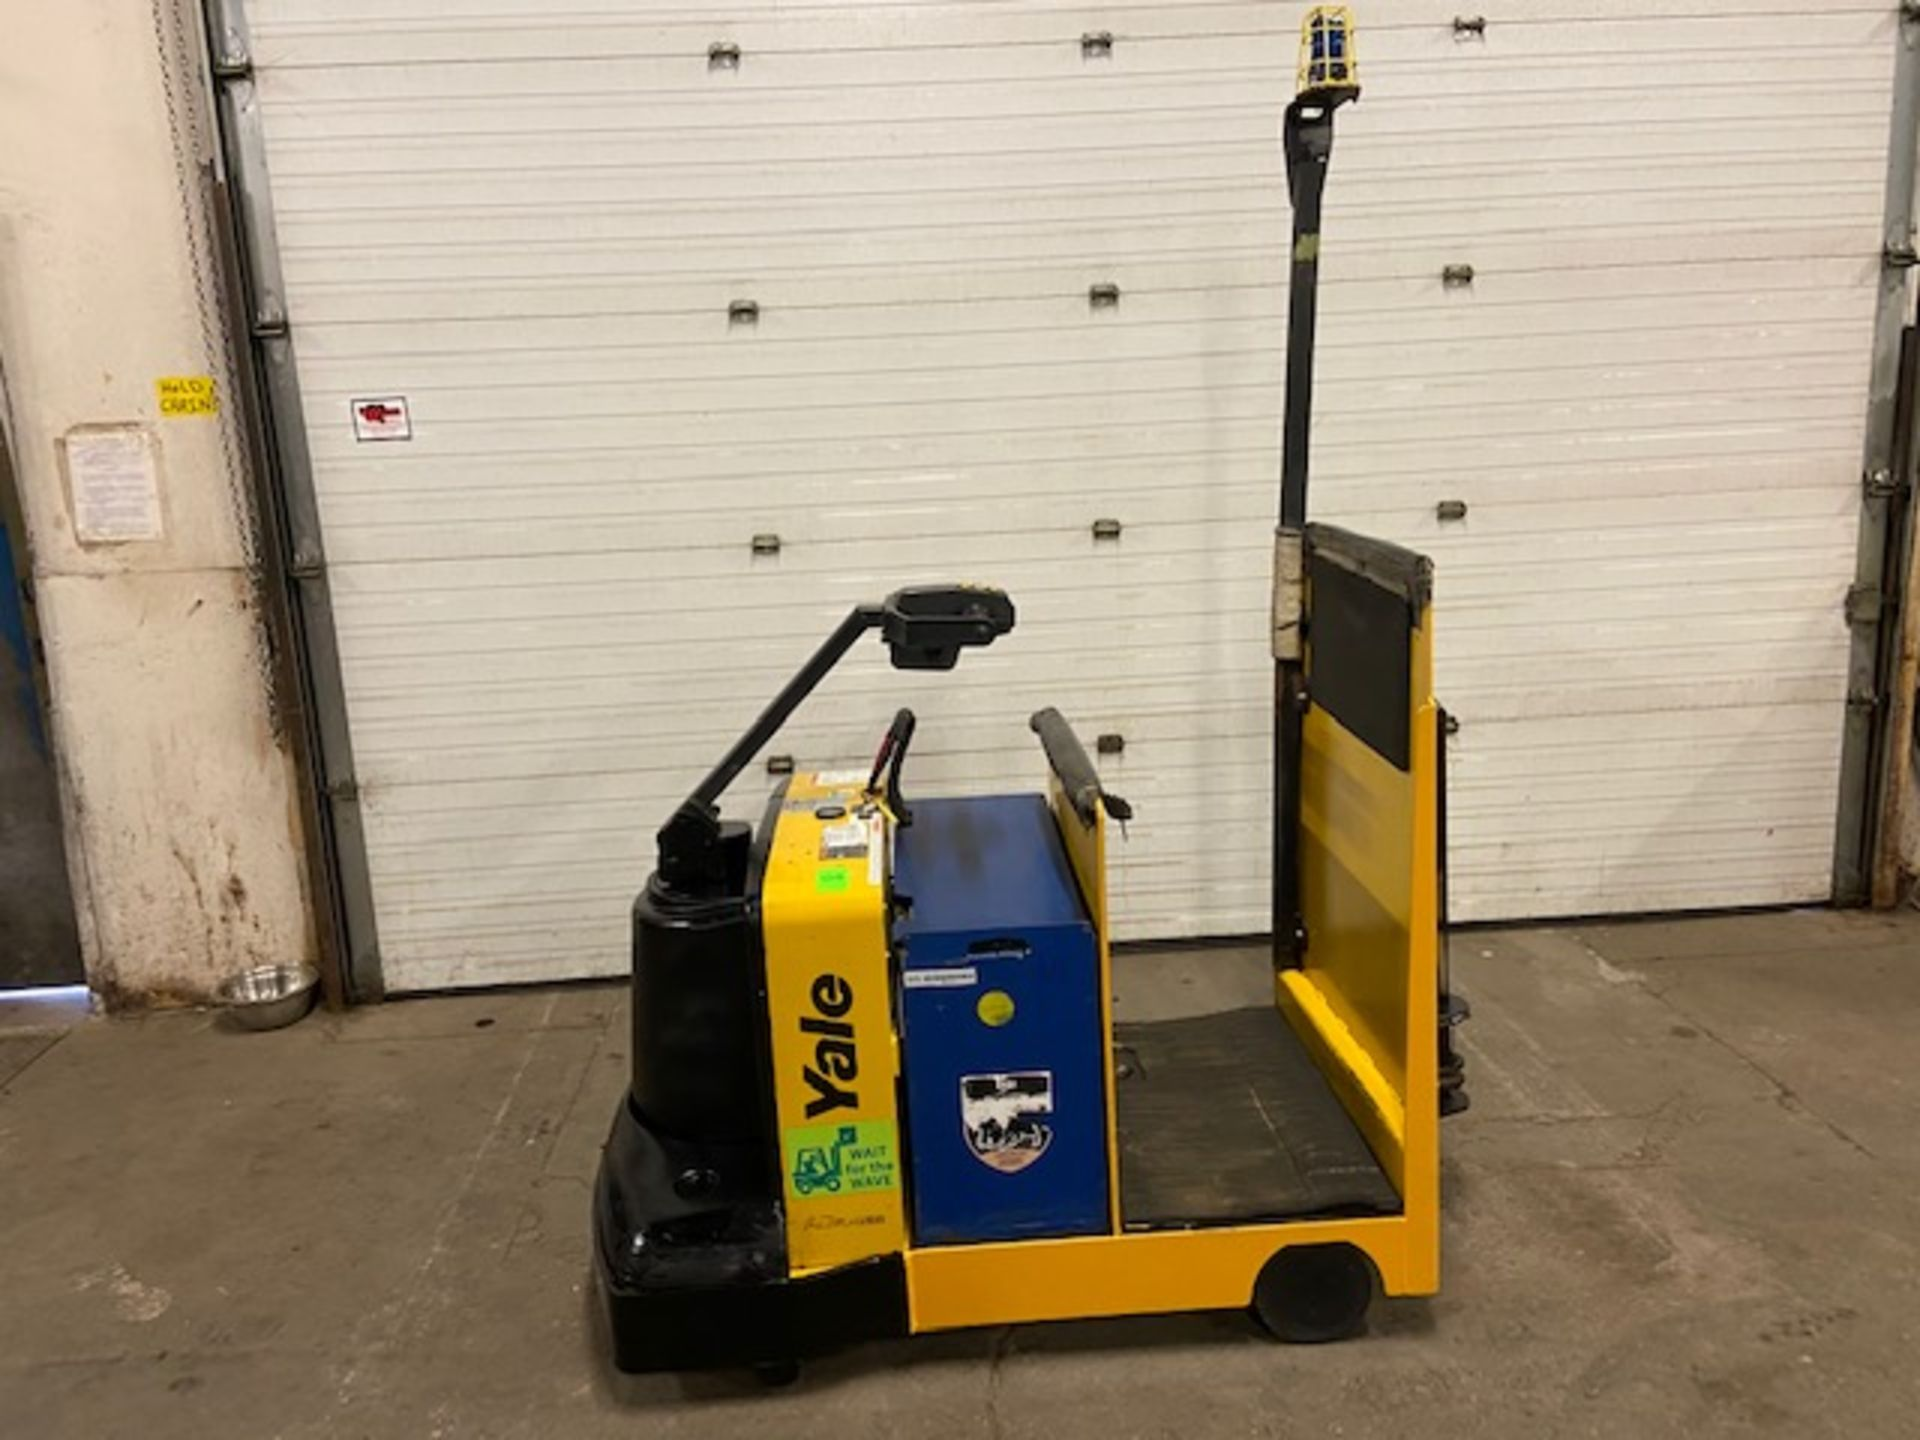 2011 Yale Ride On Tow Tractor - Tugger / Personal Carrier Electric 24V